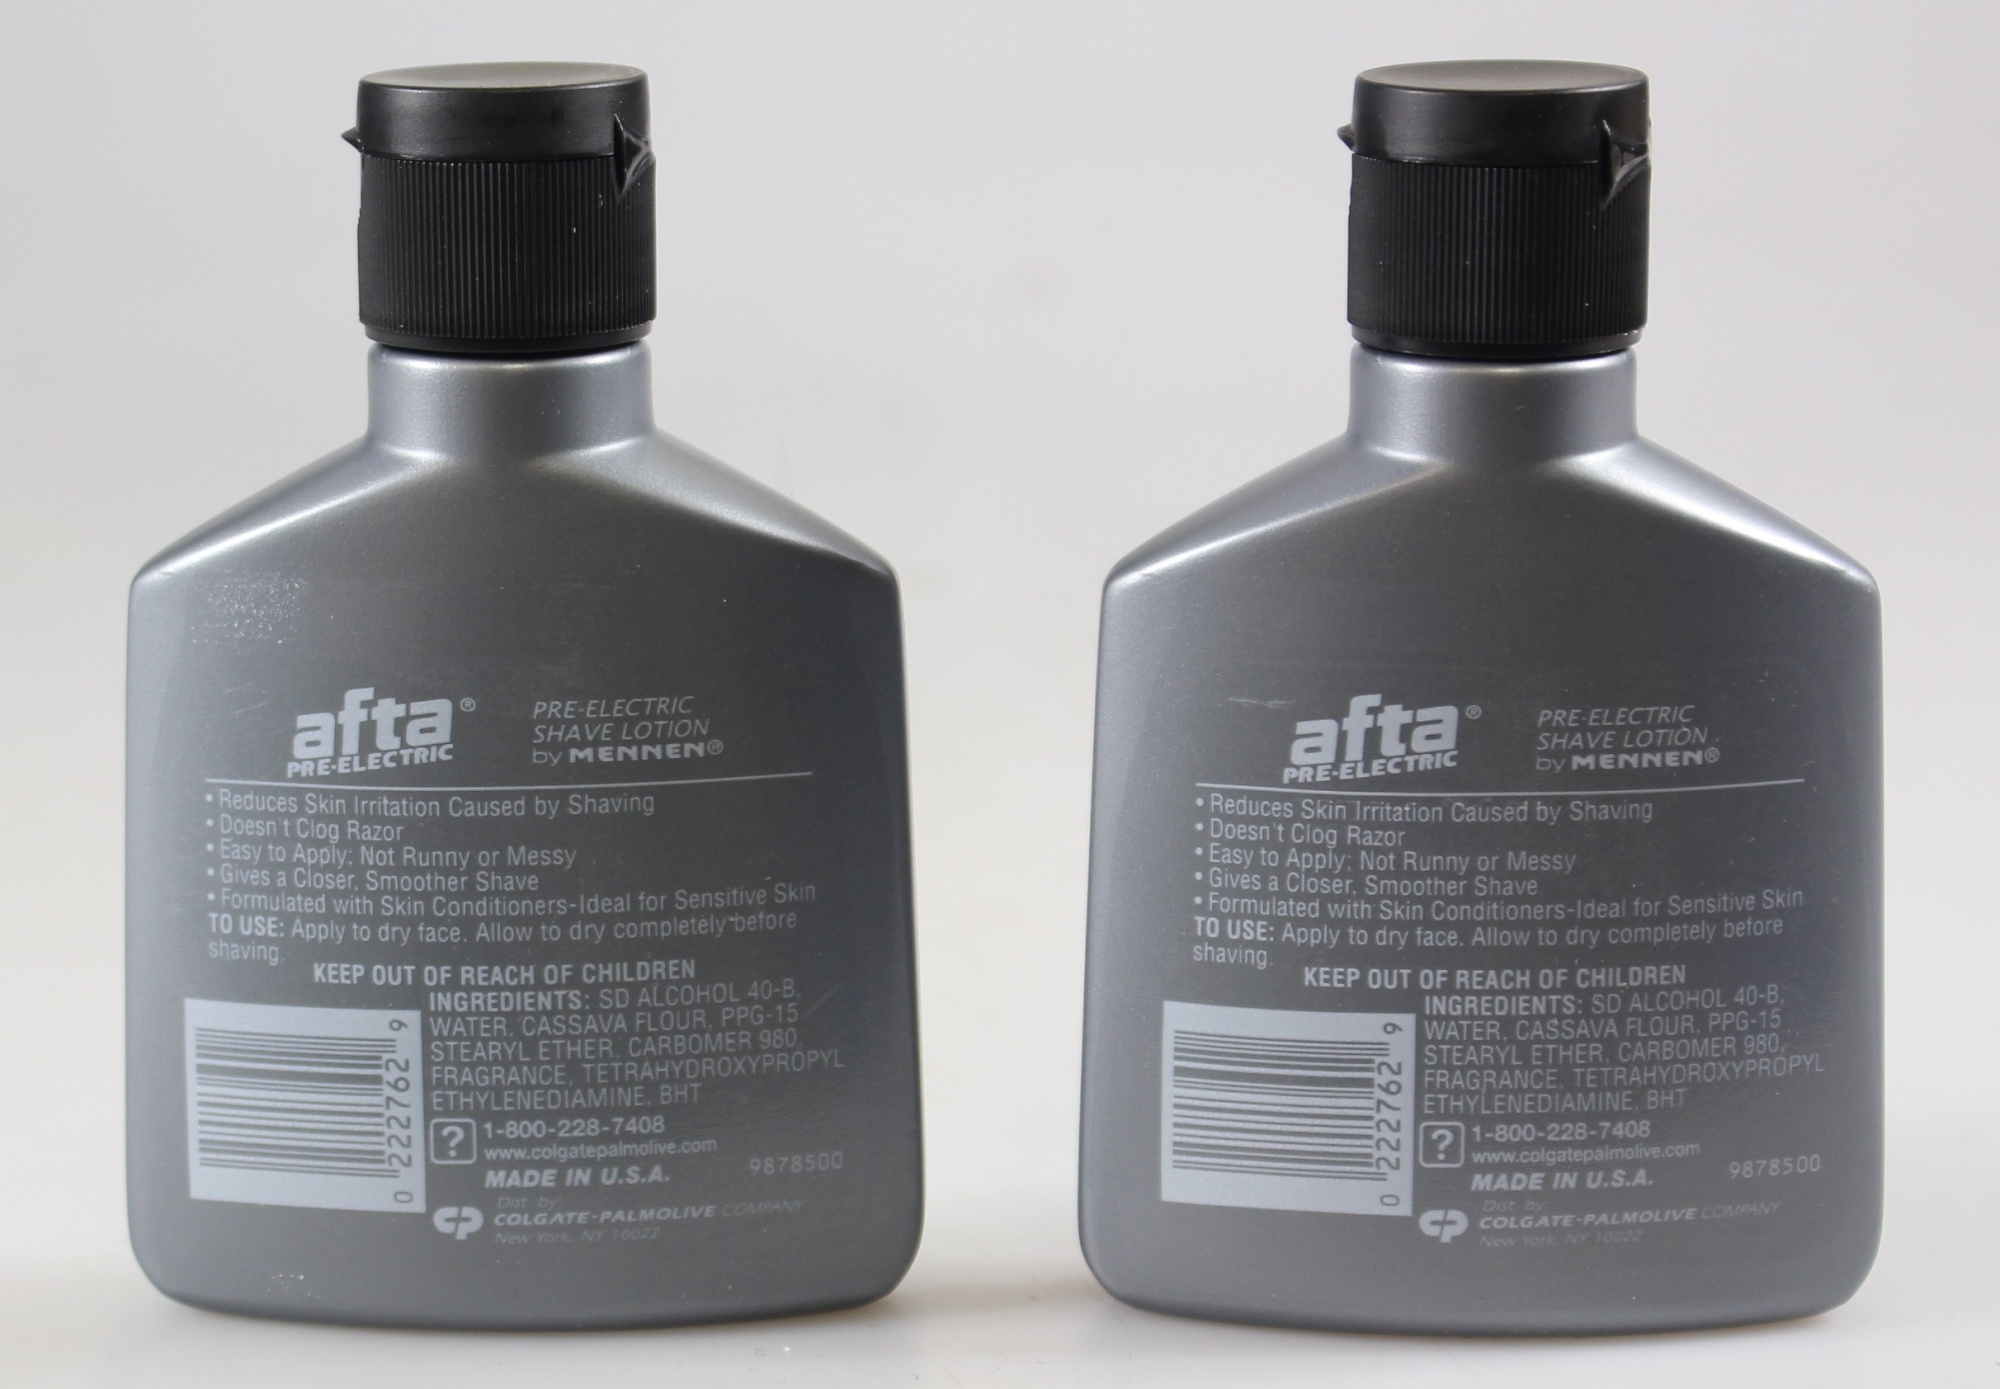 Mennen Afta Pre Electric Shave Lotion 90ml Pack Of 2 By Mennen